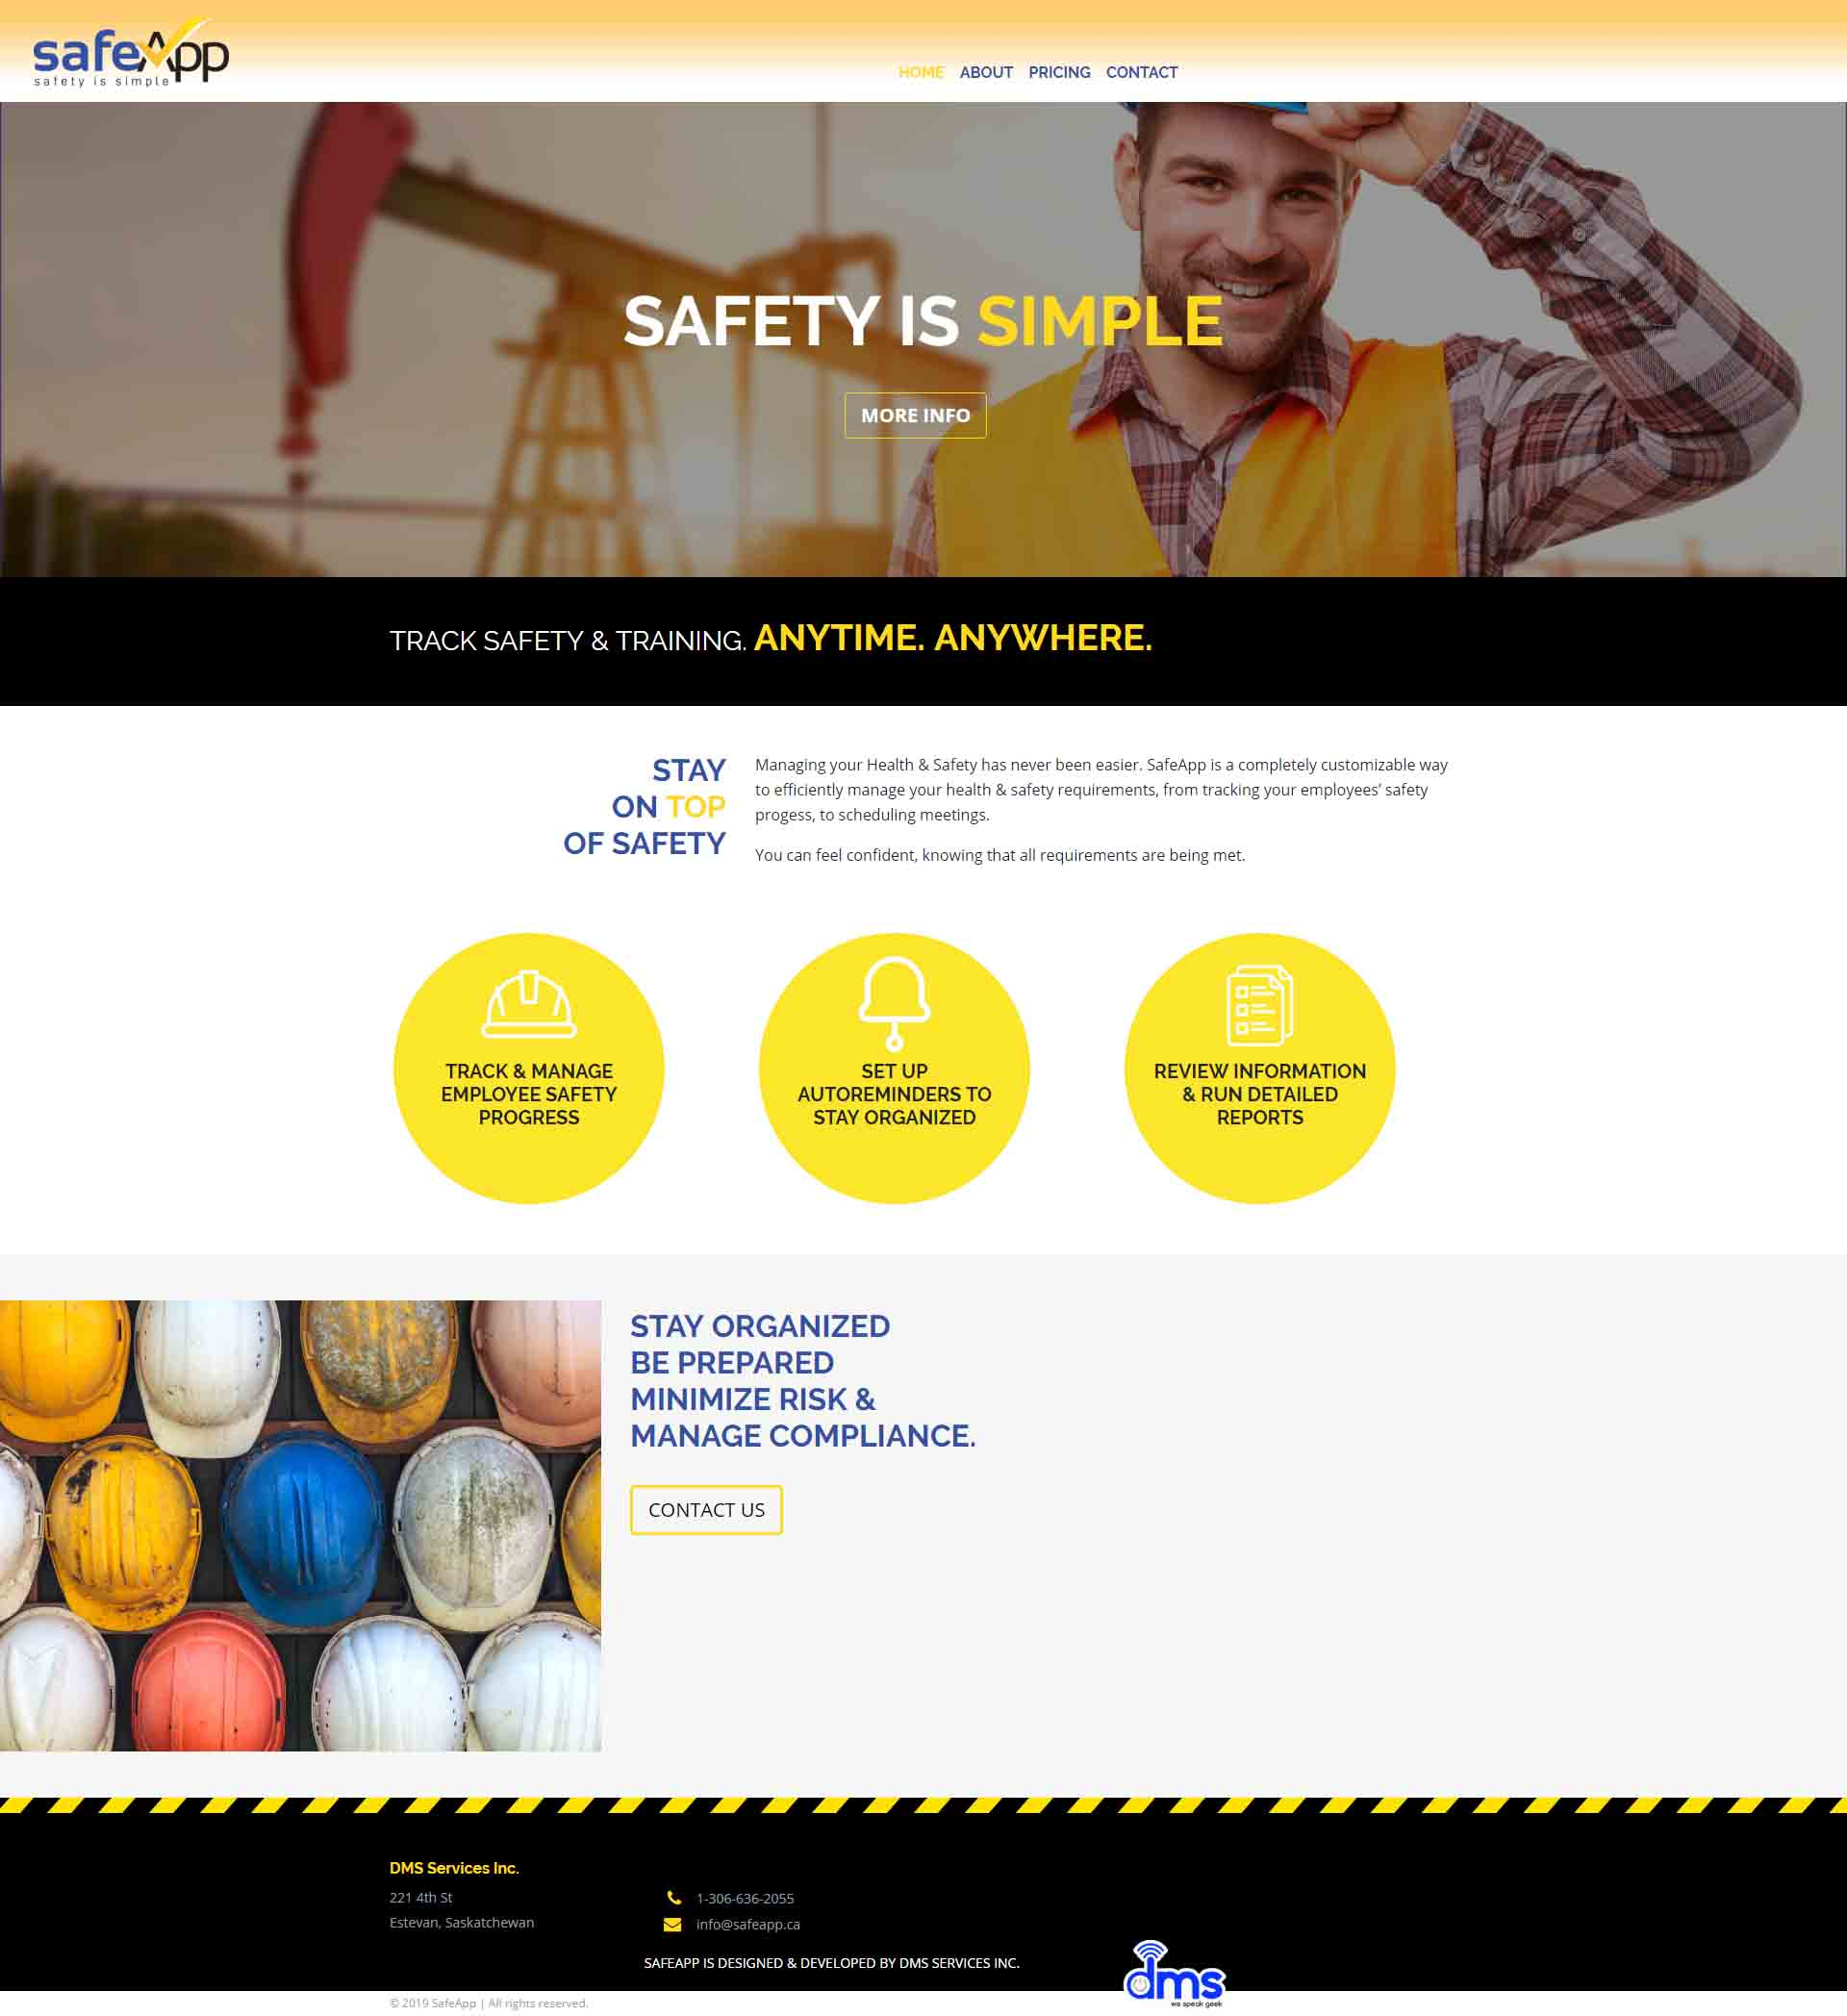 DMS Services Website Portfolio - SafeApp